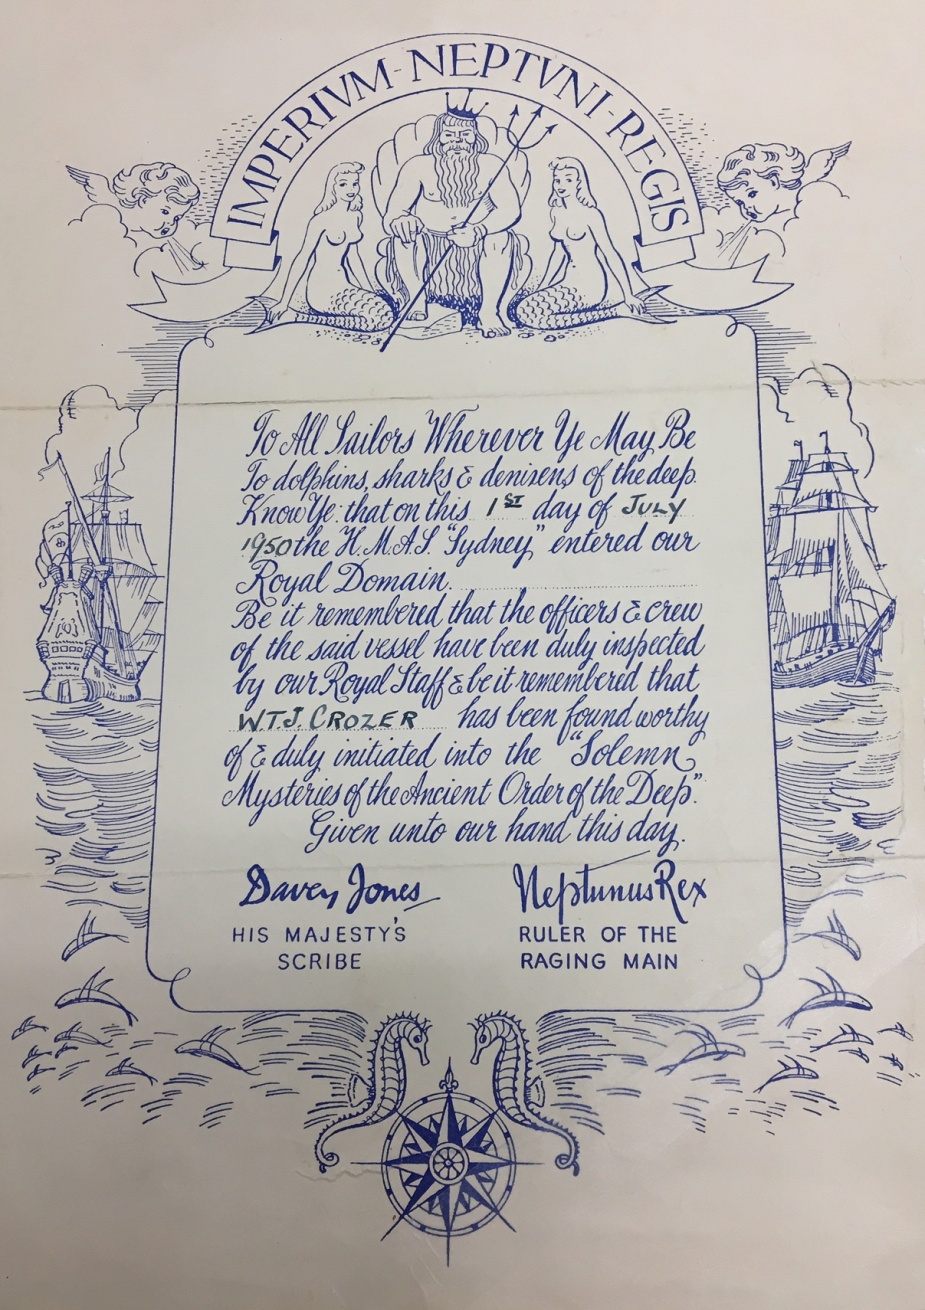 HMAS Sydney (III) certificate, 1950. The blowing winds, Zephyr and Boreas, are another recurring theme.